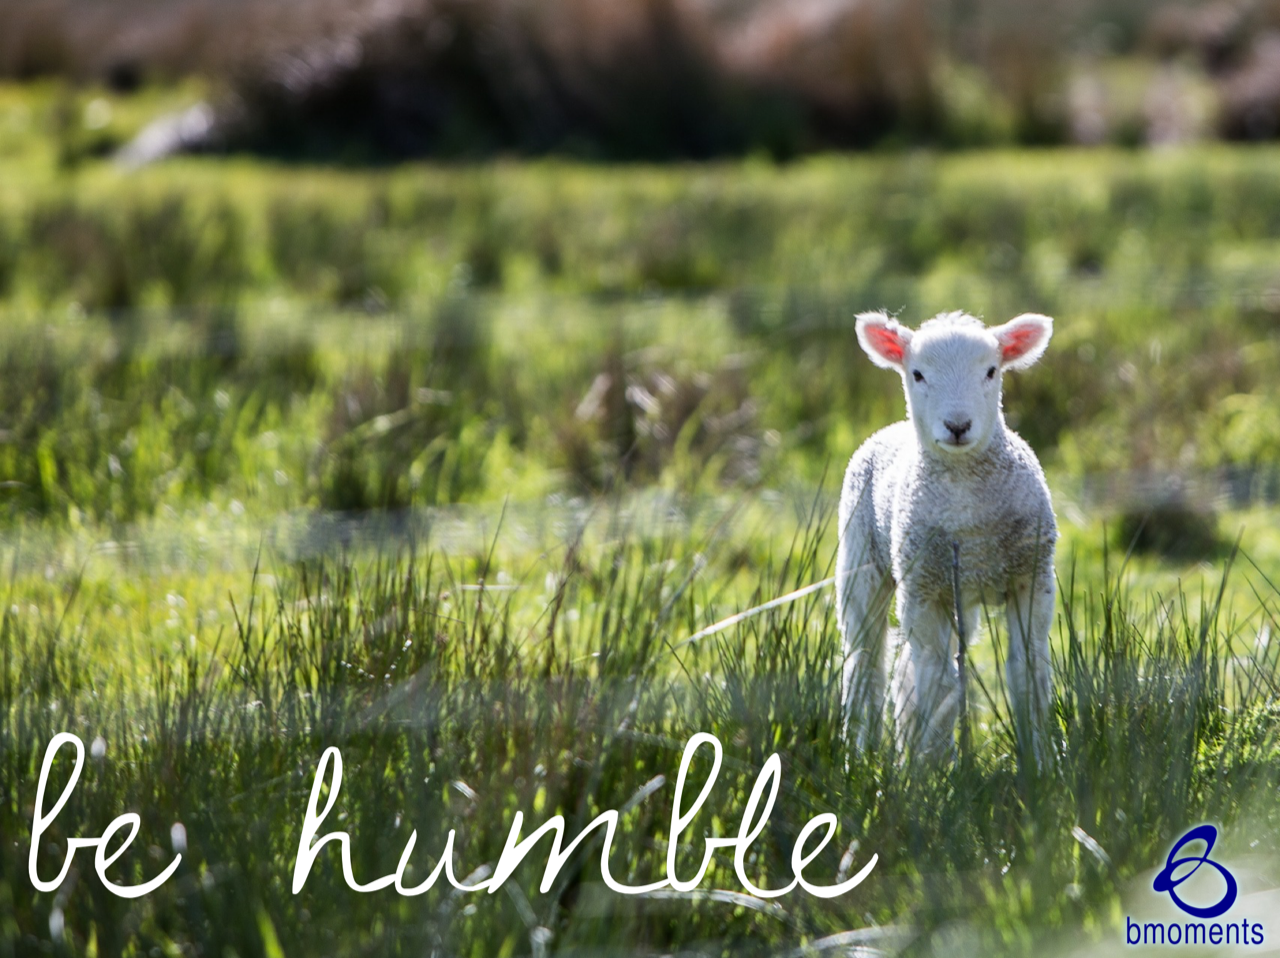 There's Power in Humility: Be Gentle as a Lamb